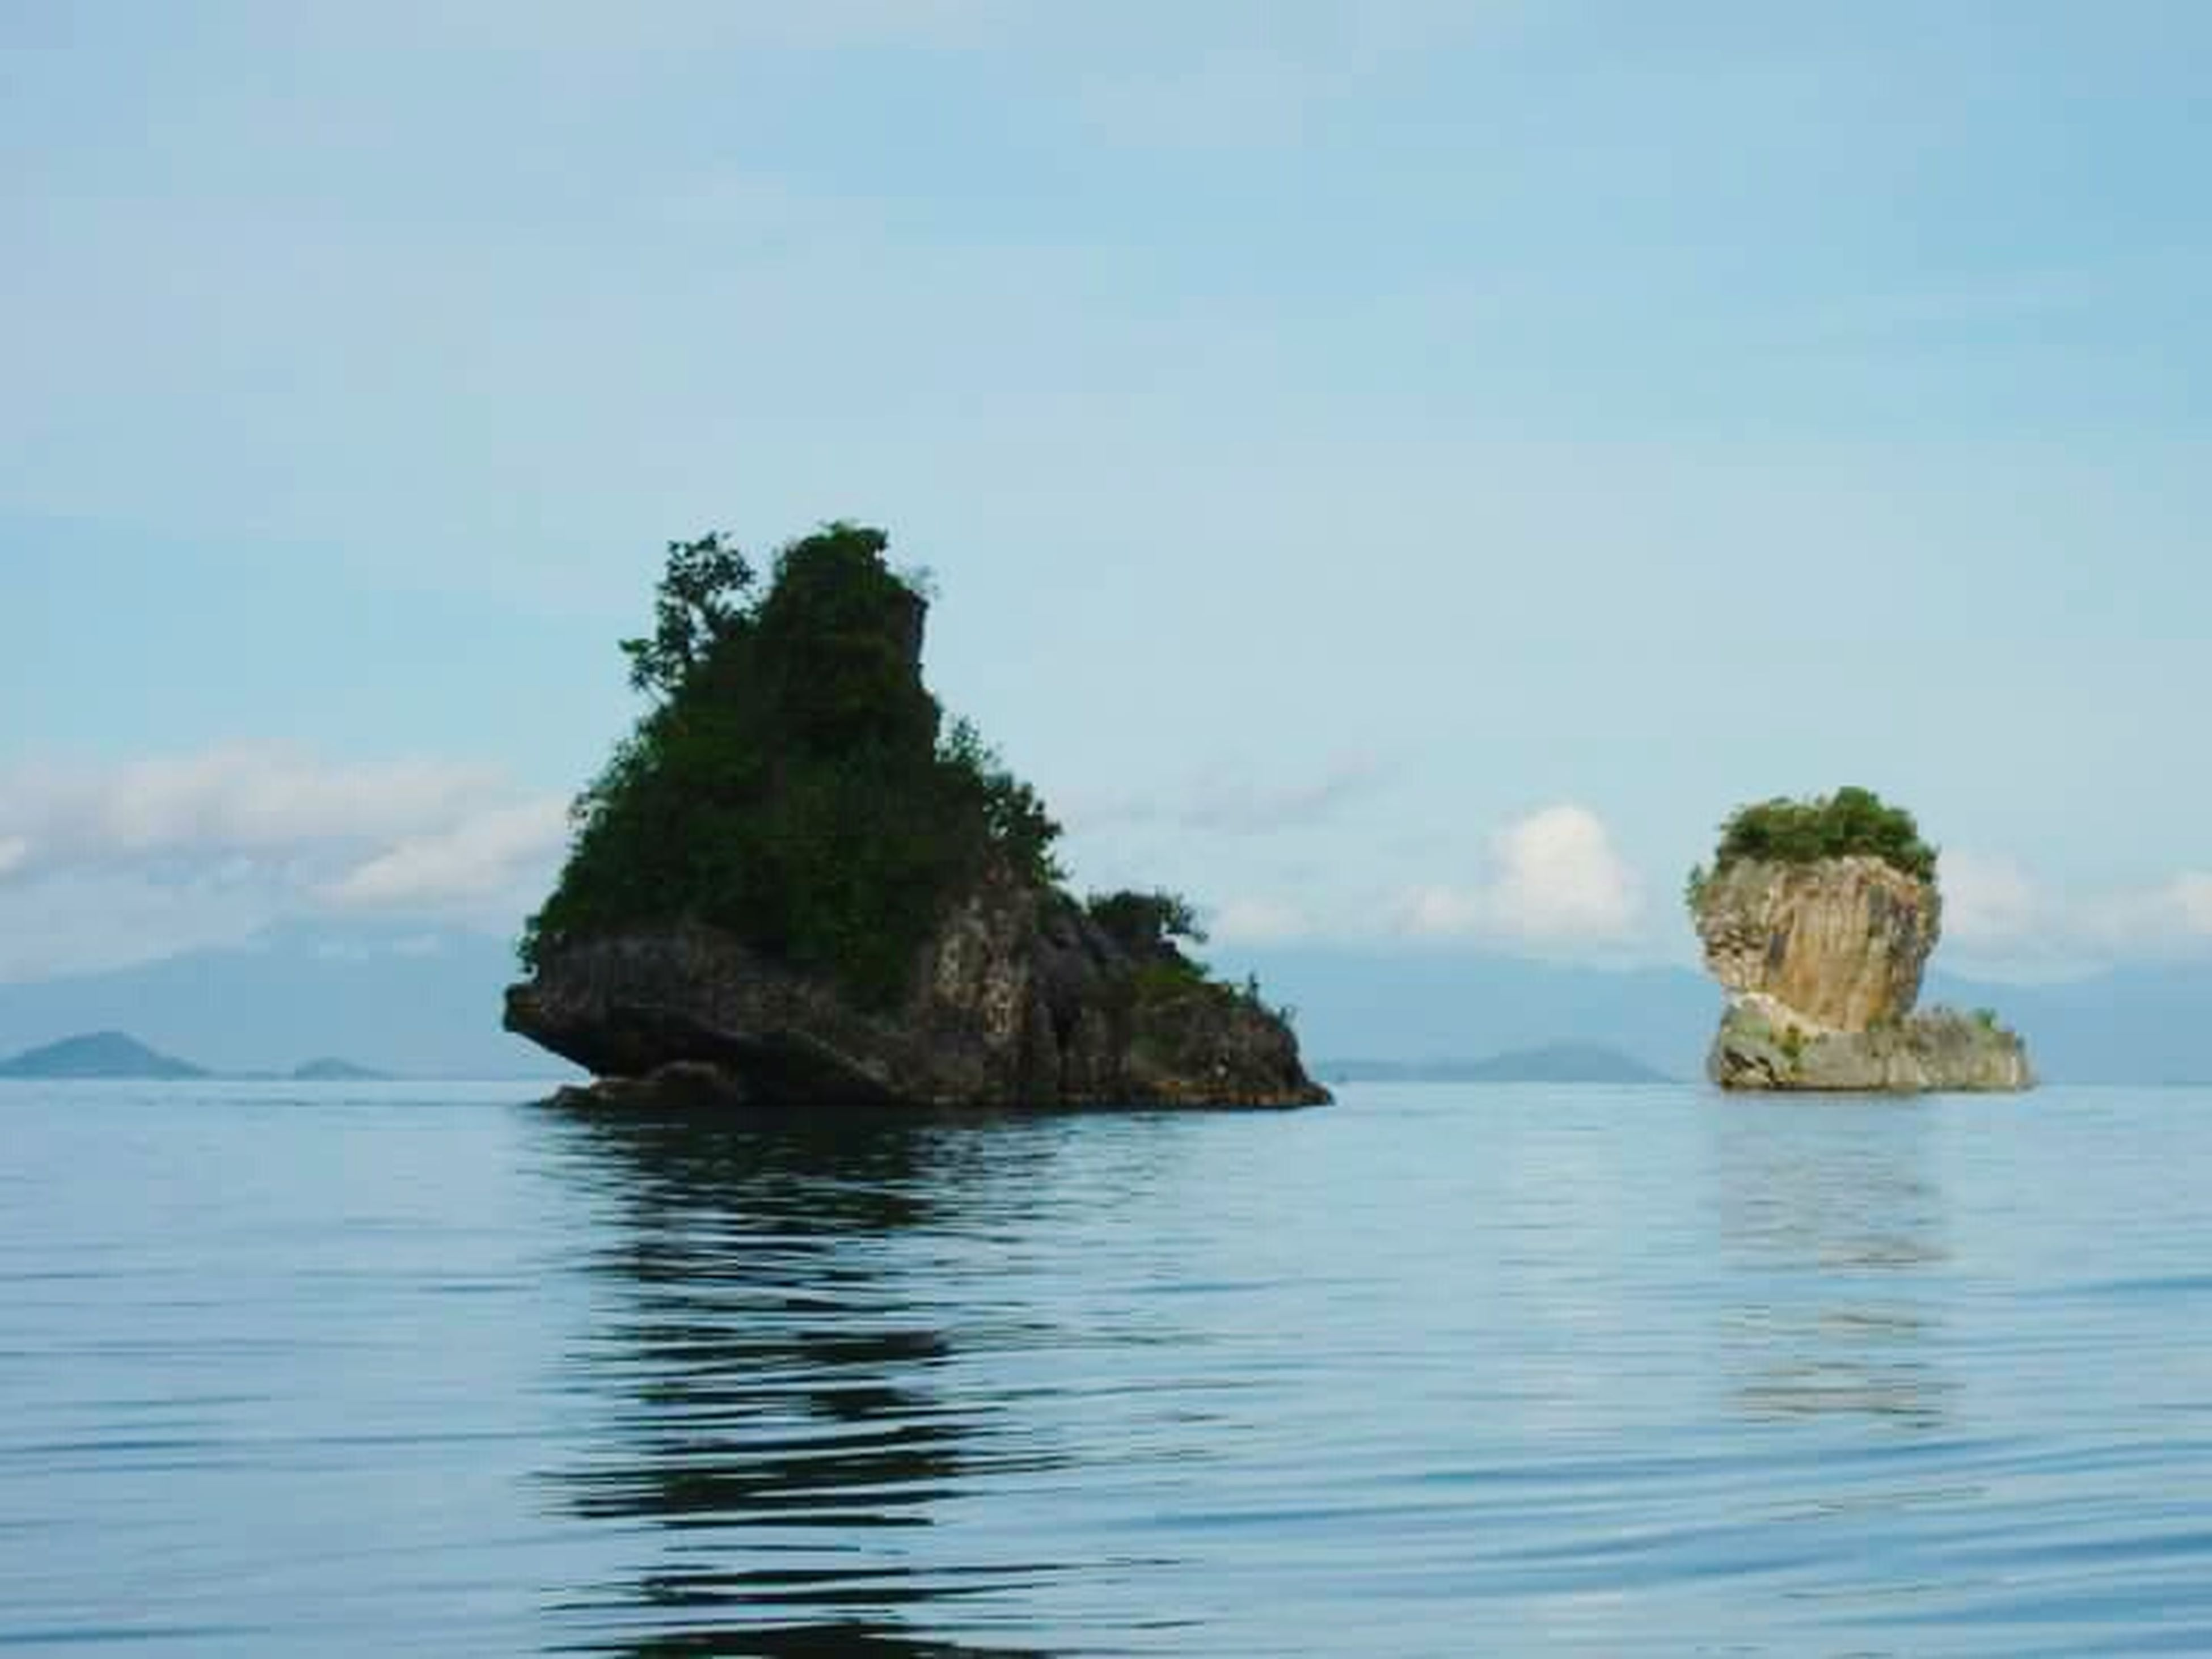 water, sea, tranquil scene, tranquility, waterfront, scenics, beauty in nature, sky, nature, rock - object, rock formation, horizon over water, idyllic, blue, rock, calm, cliff, day, outdoors, rippled